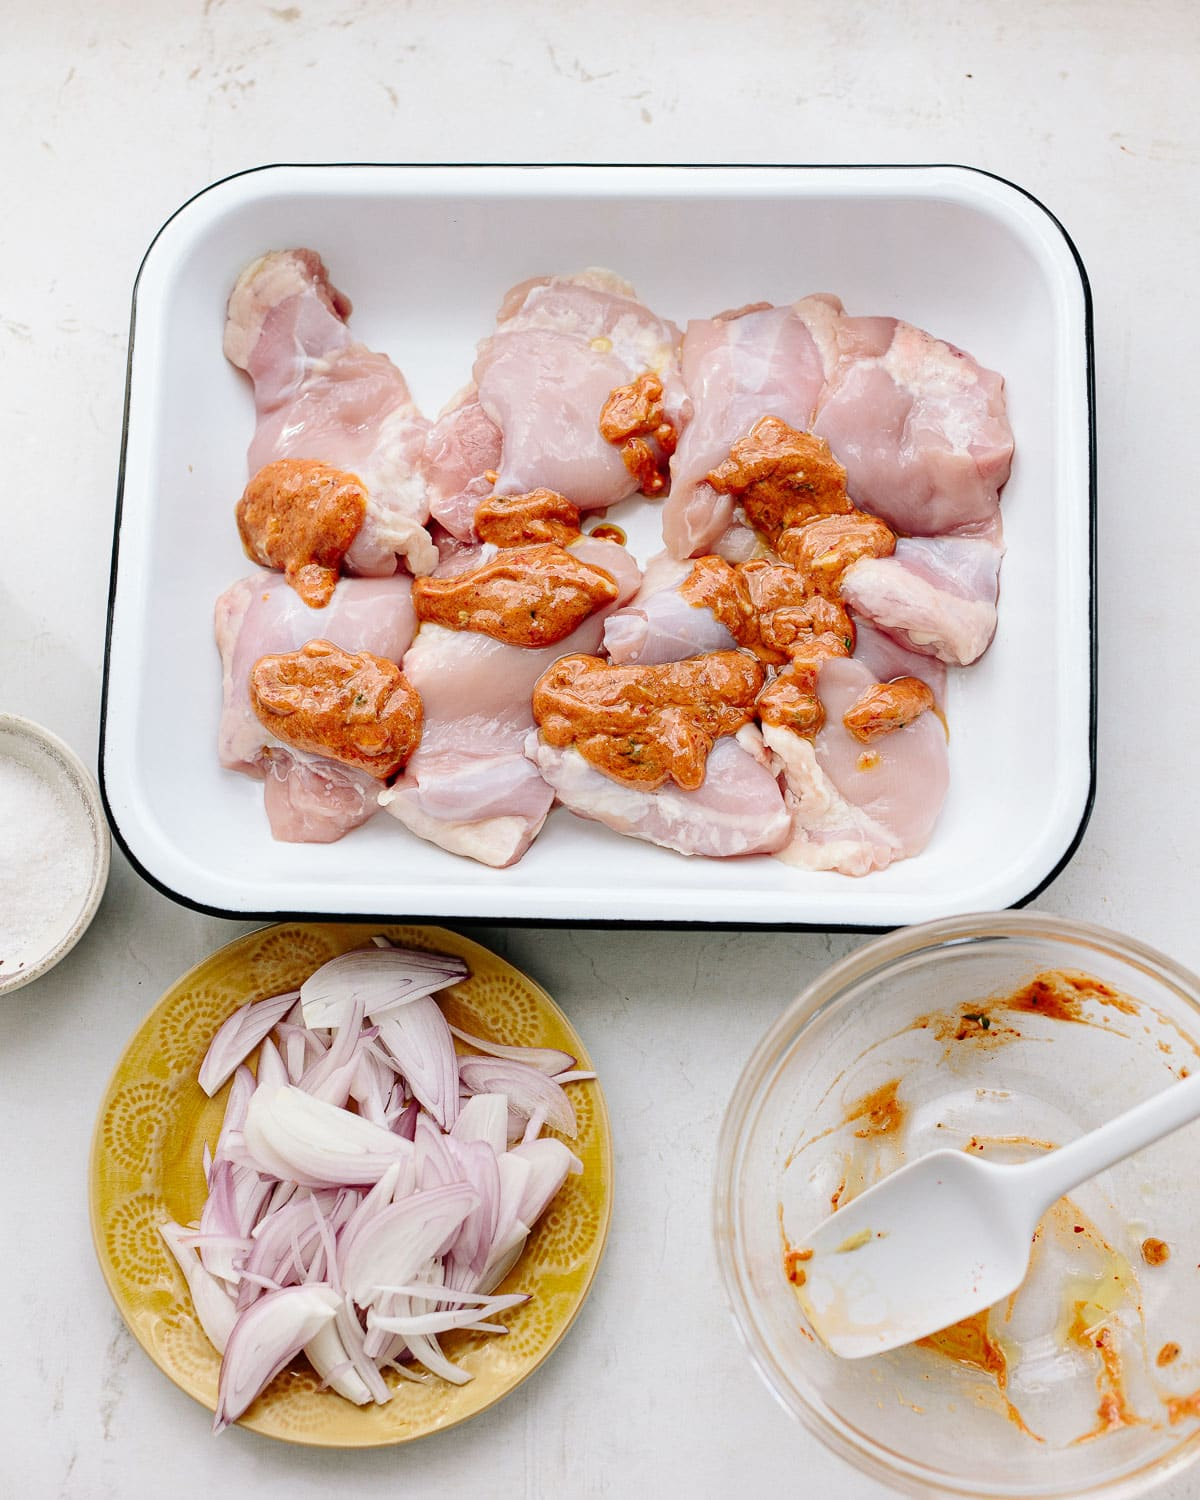 Ingredients to make baked chicken thighs arranged on a tray, with raw boneless skinless chicken pieces, shallots, garlic, mustard, thyme and tomato paste.